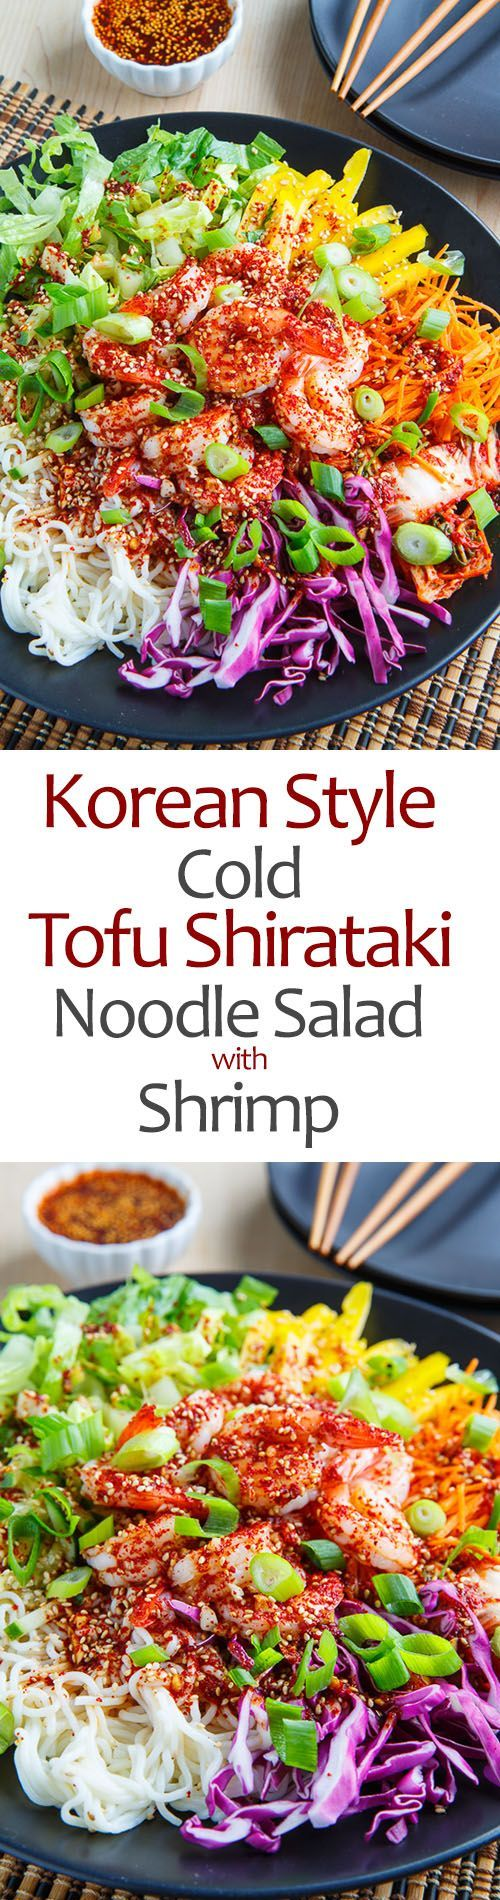 Korean style cold tofu shirataki noodle salad with shrimp popular korean style cold tofu shirataki noodle salad with shrimp i made it half as spicy as the recipe called for and it was still a lip burner forumfinder Choice Image